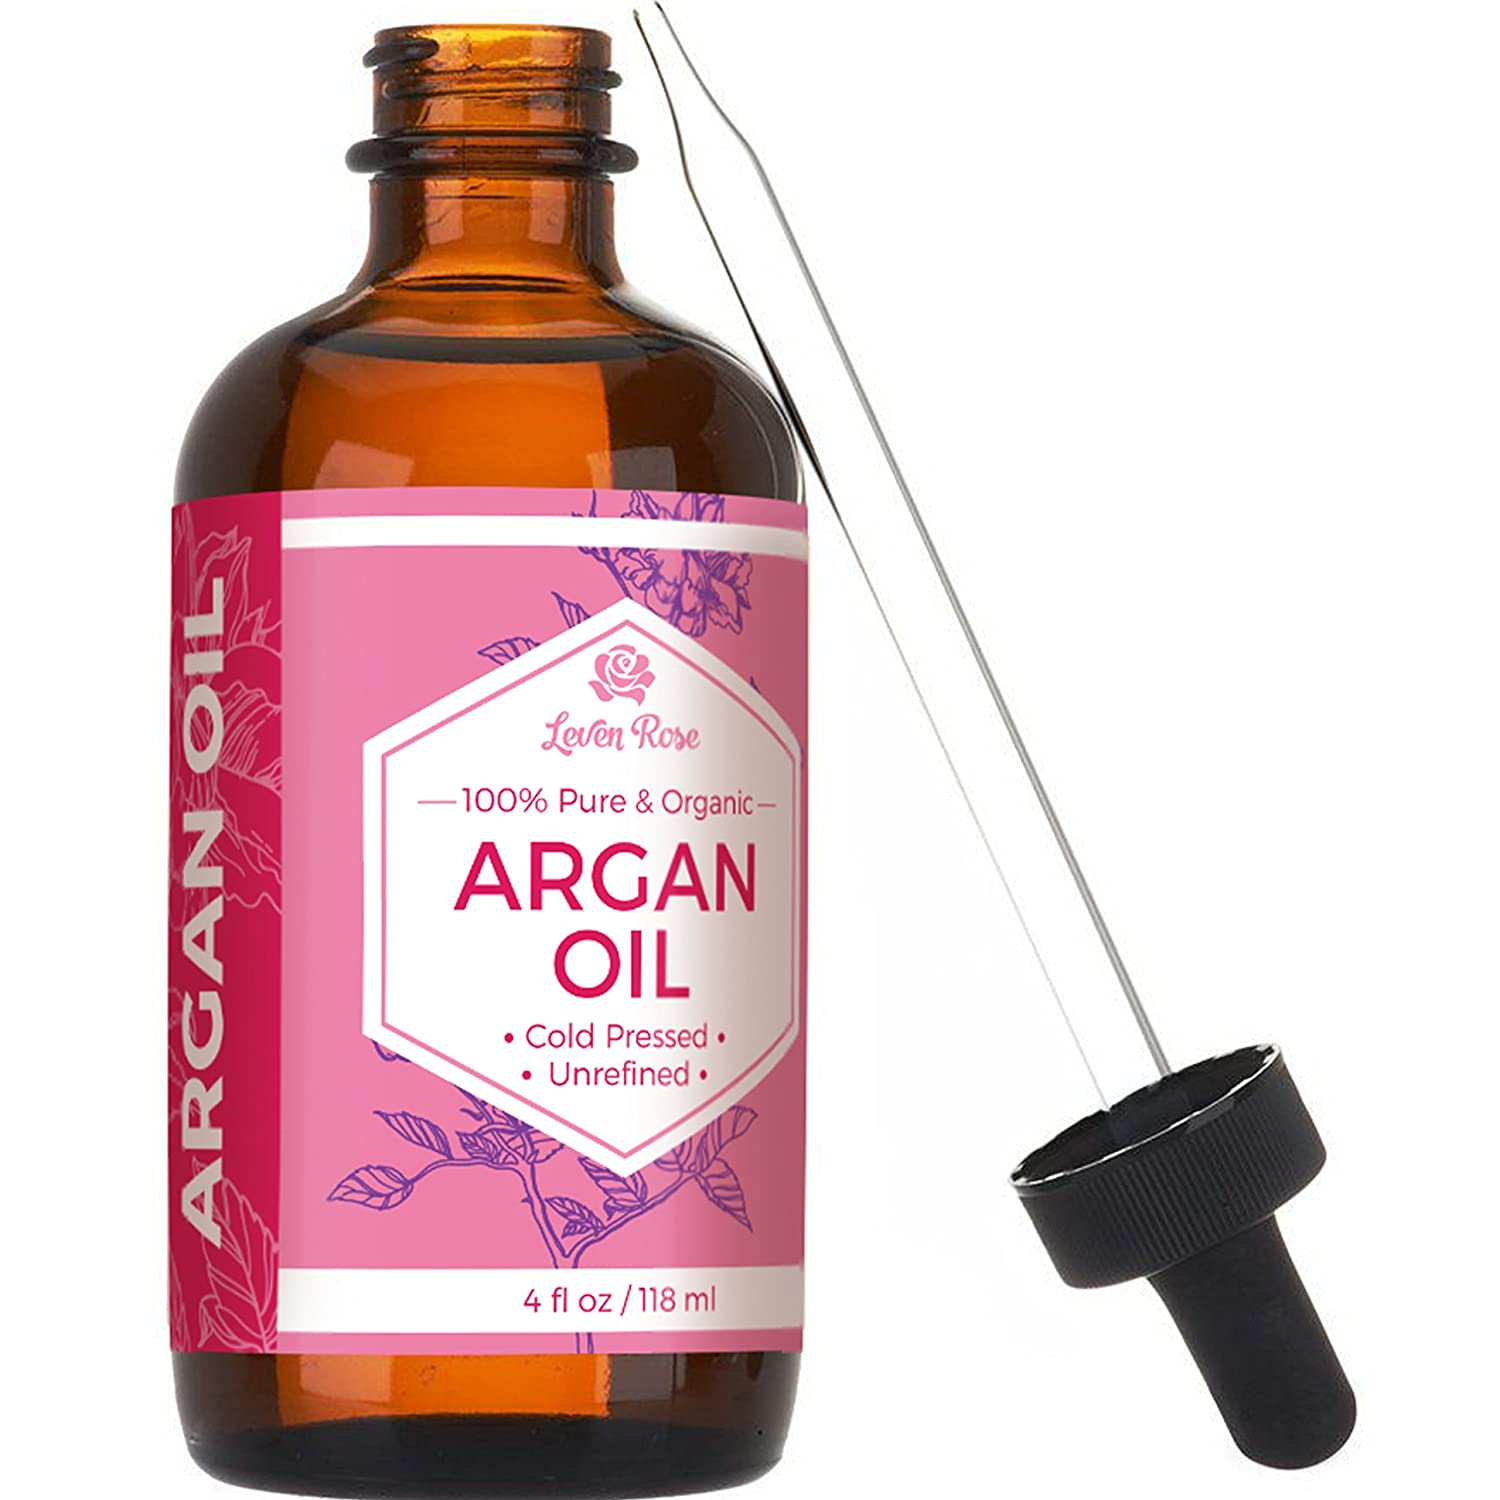 Argan Oil by Leven Rose - 100% Pure Organic Virgin Cold Pressed Moroccan Anti Aging Acne Treatment Moisturizer for Hair Skin and Nails - 118 ml LR